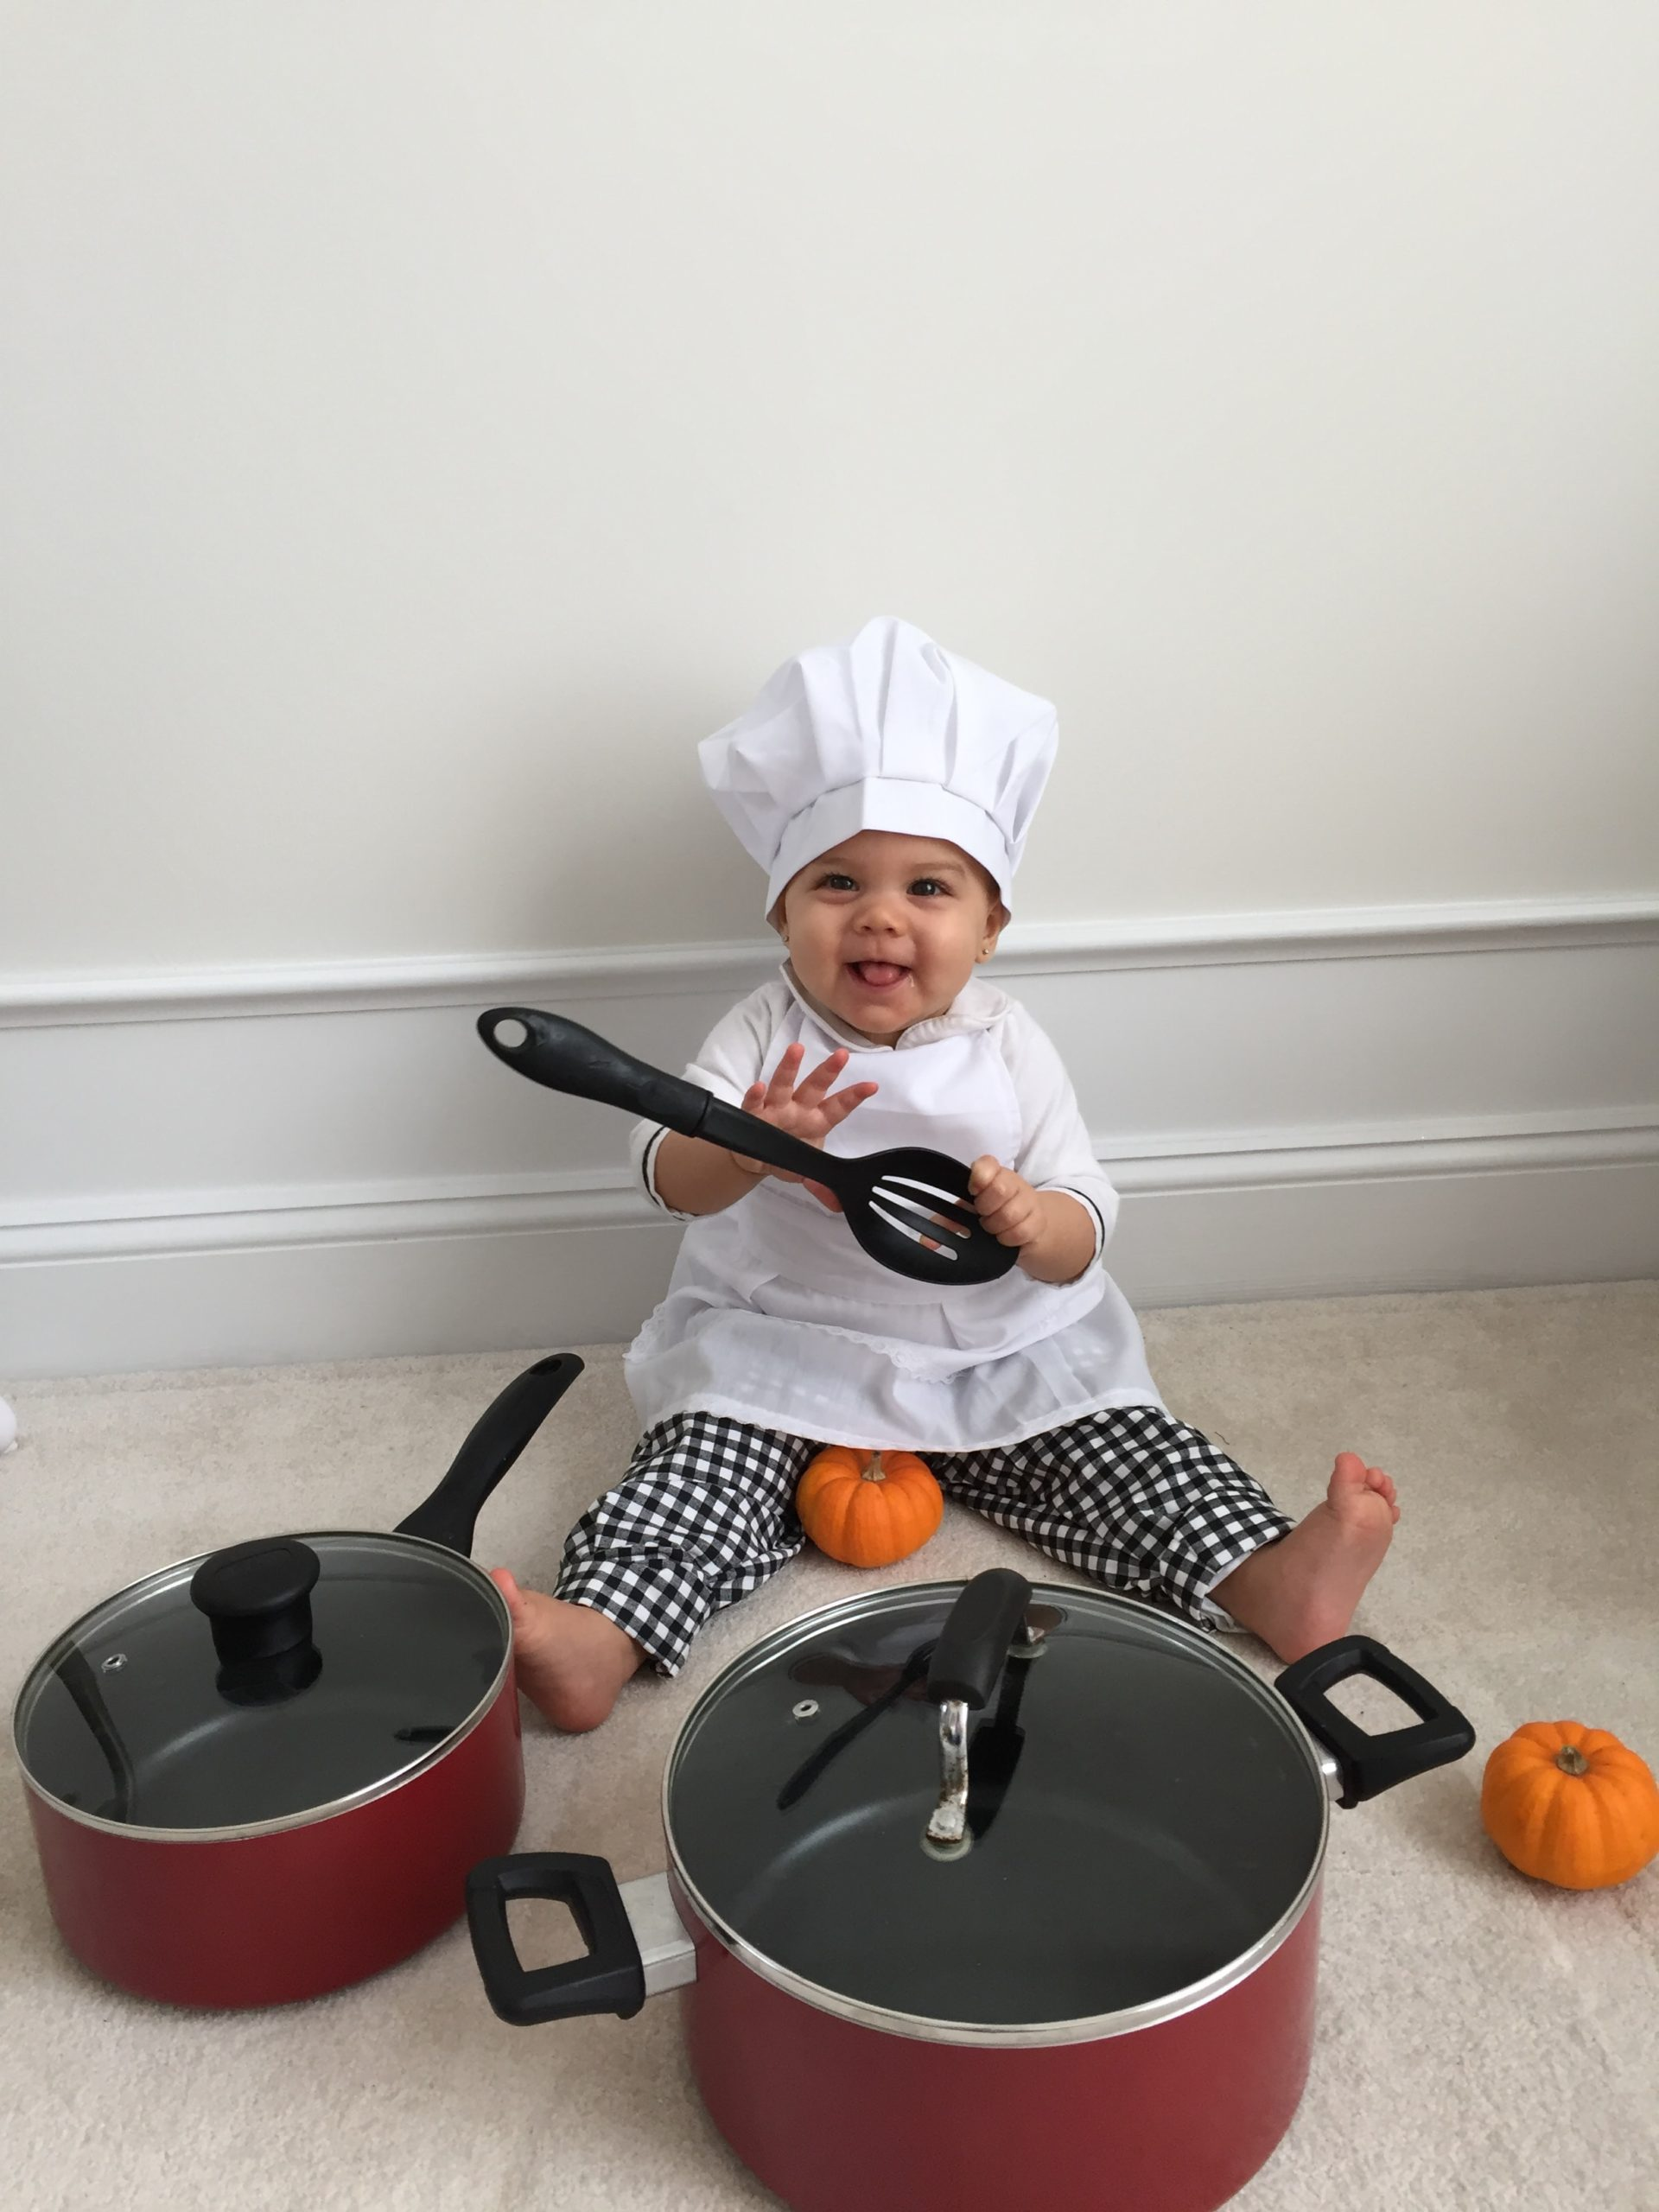 Young child in a chef's outfit, playing with kitchen utensils